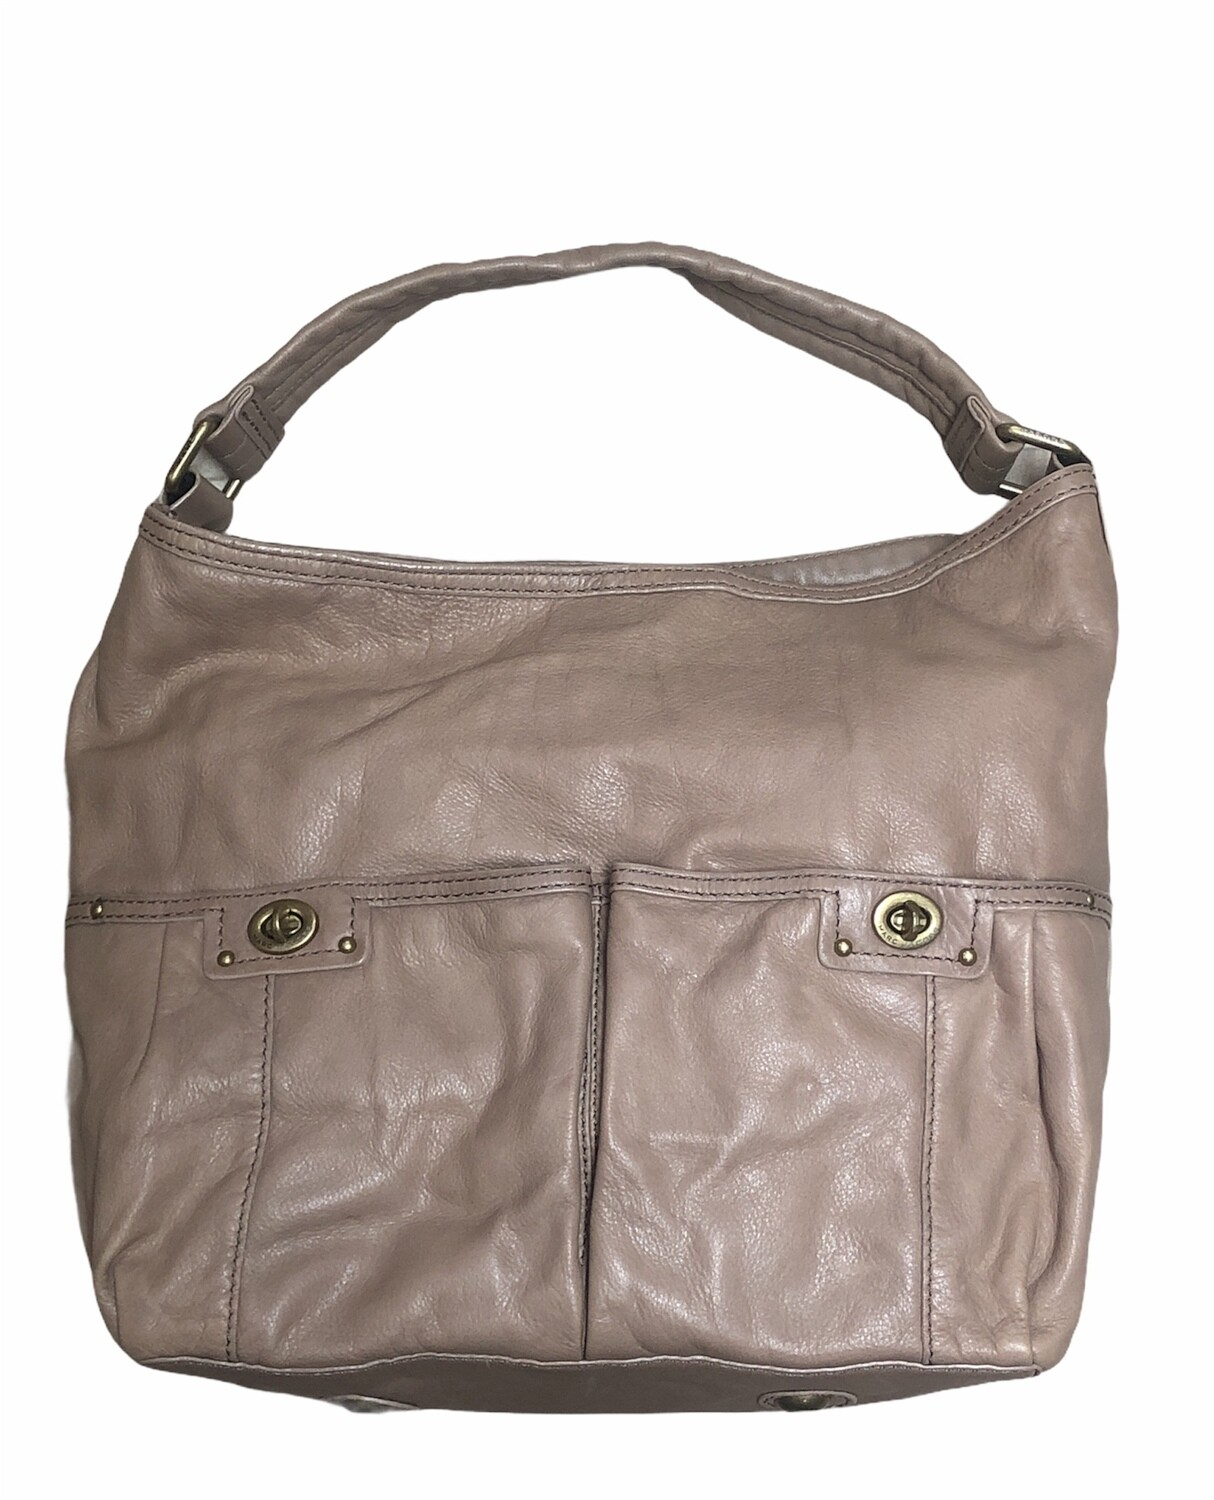 MARC by MARC JACOBS Totally Turnlock Leather Shoulder Bag